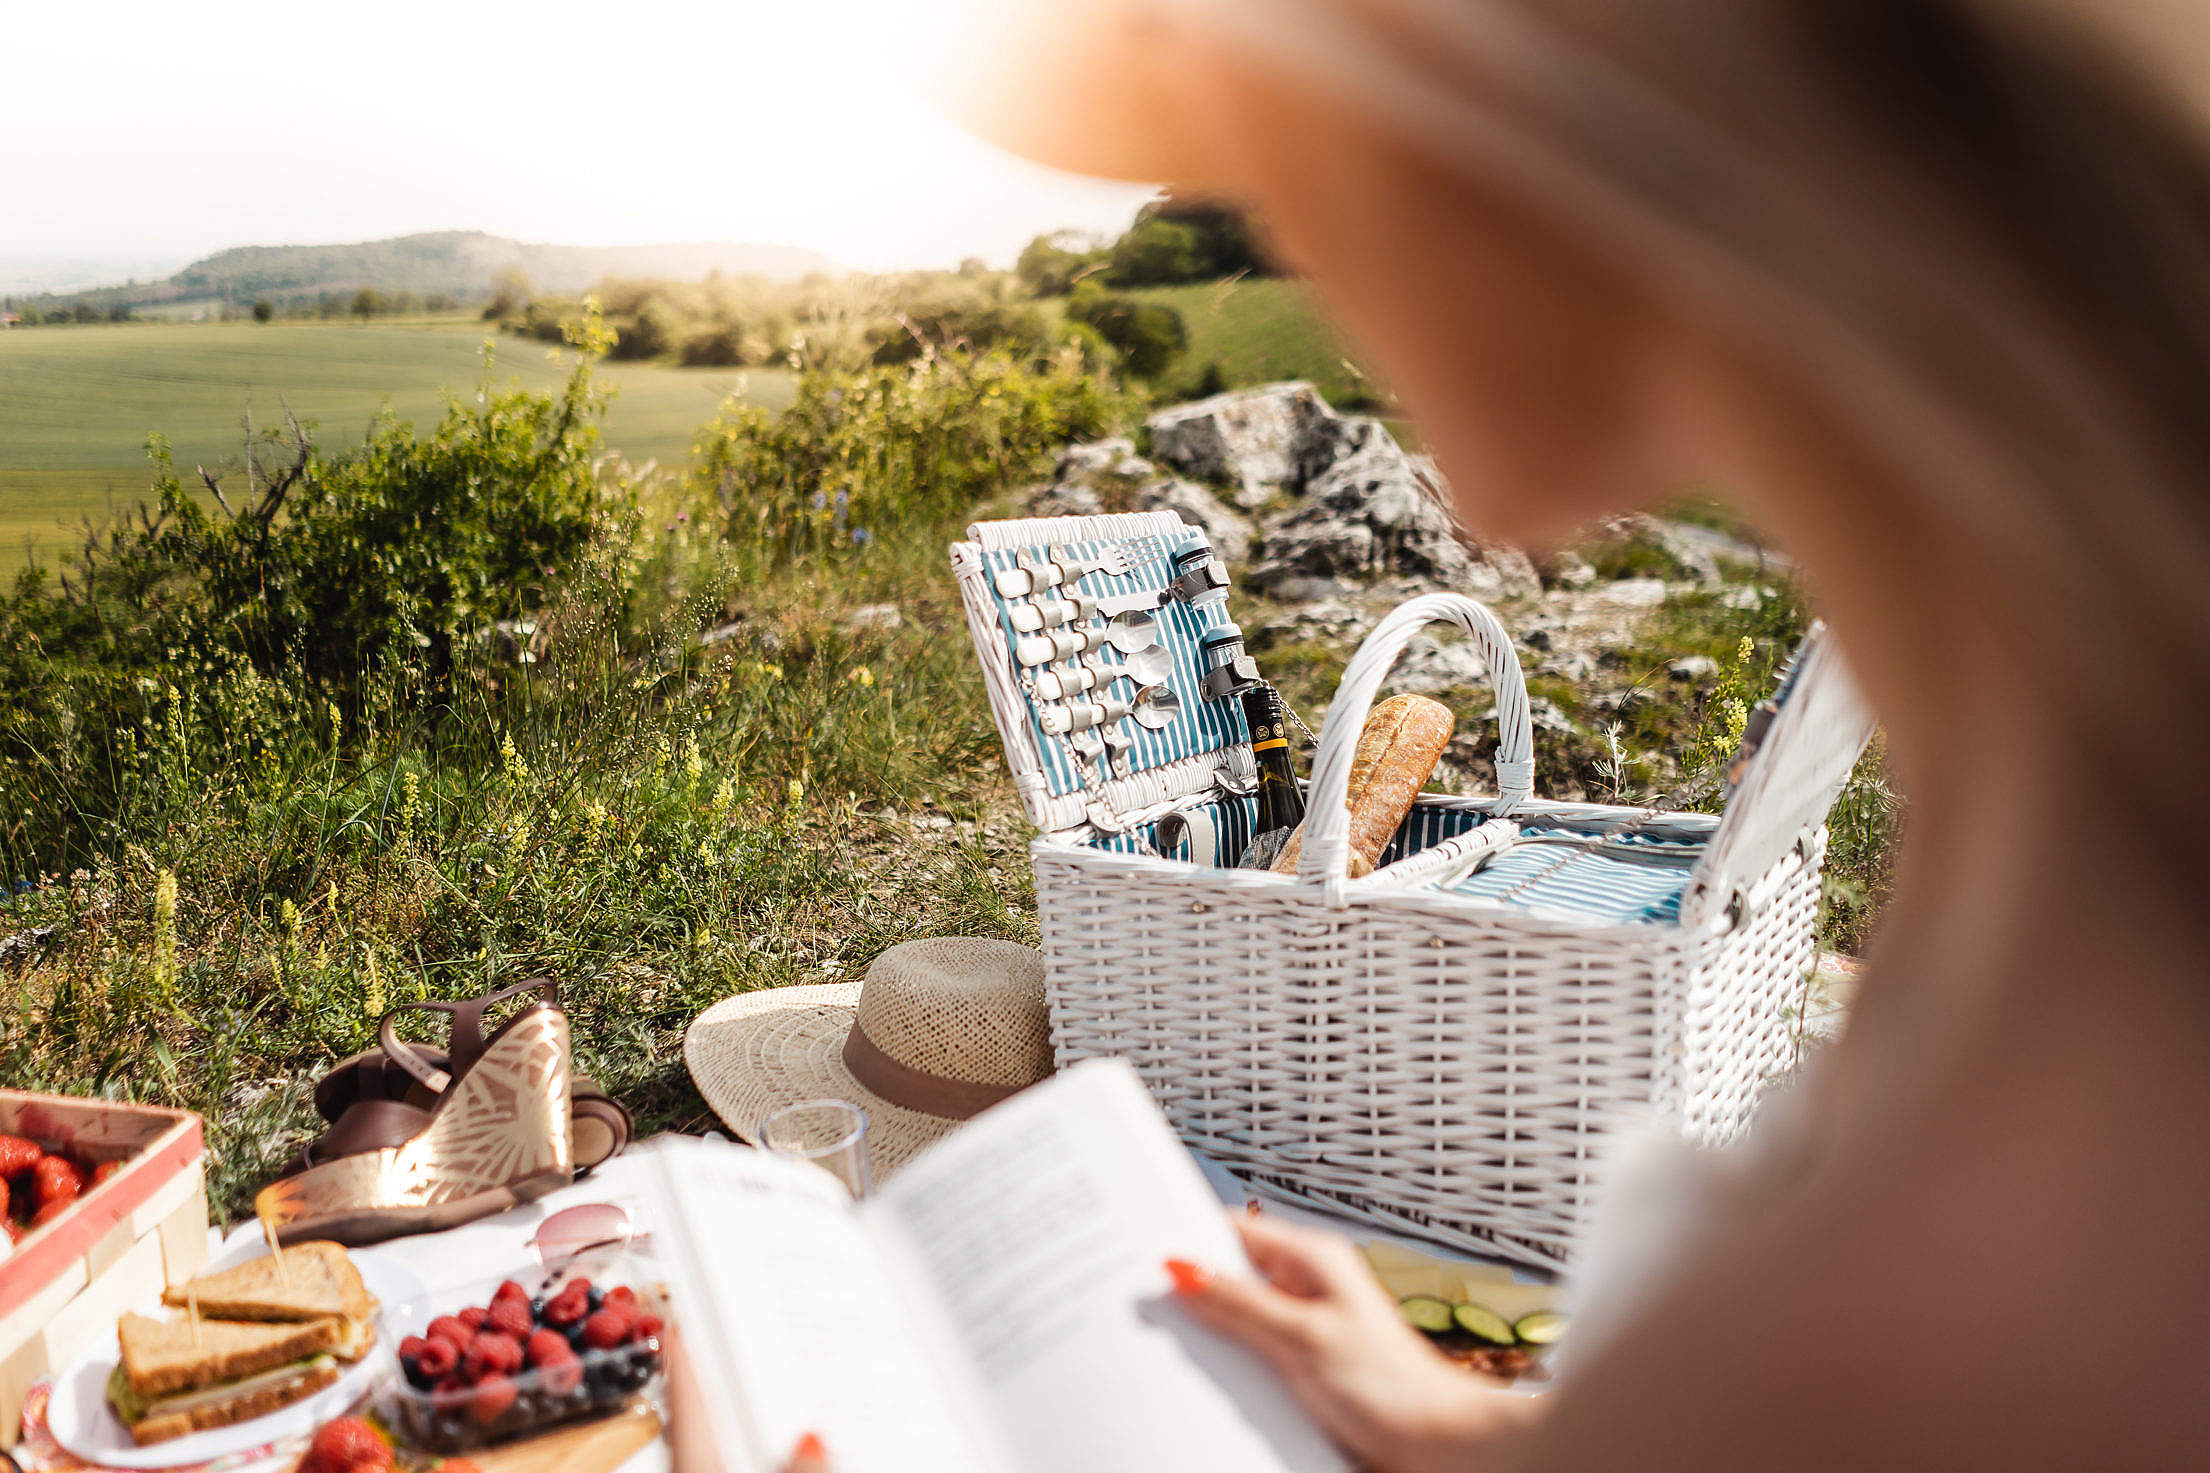 Woman Reading a Book on Picnic Free Stock Photo